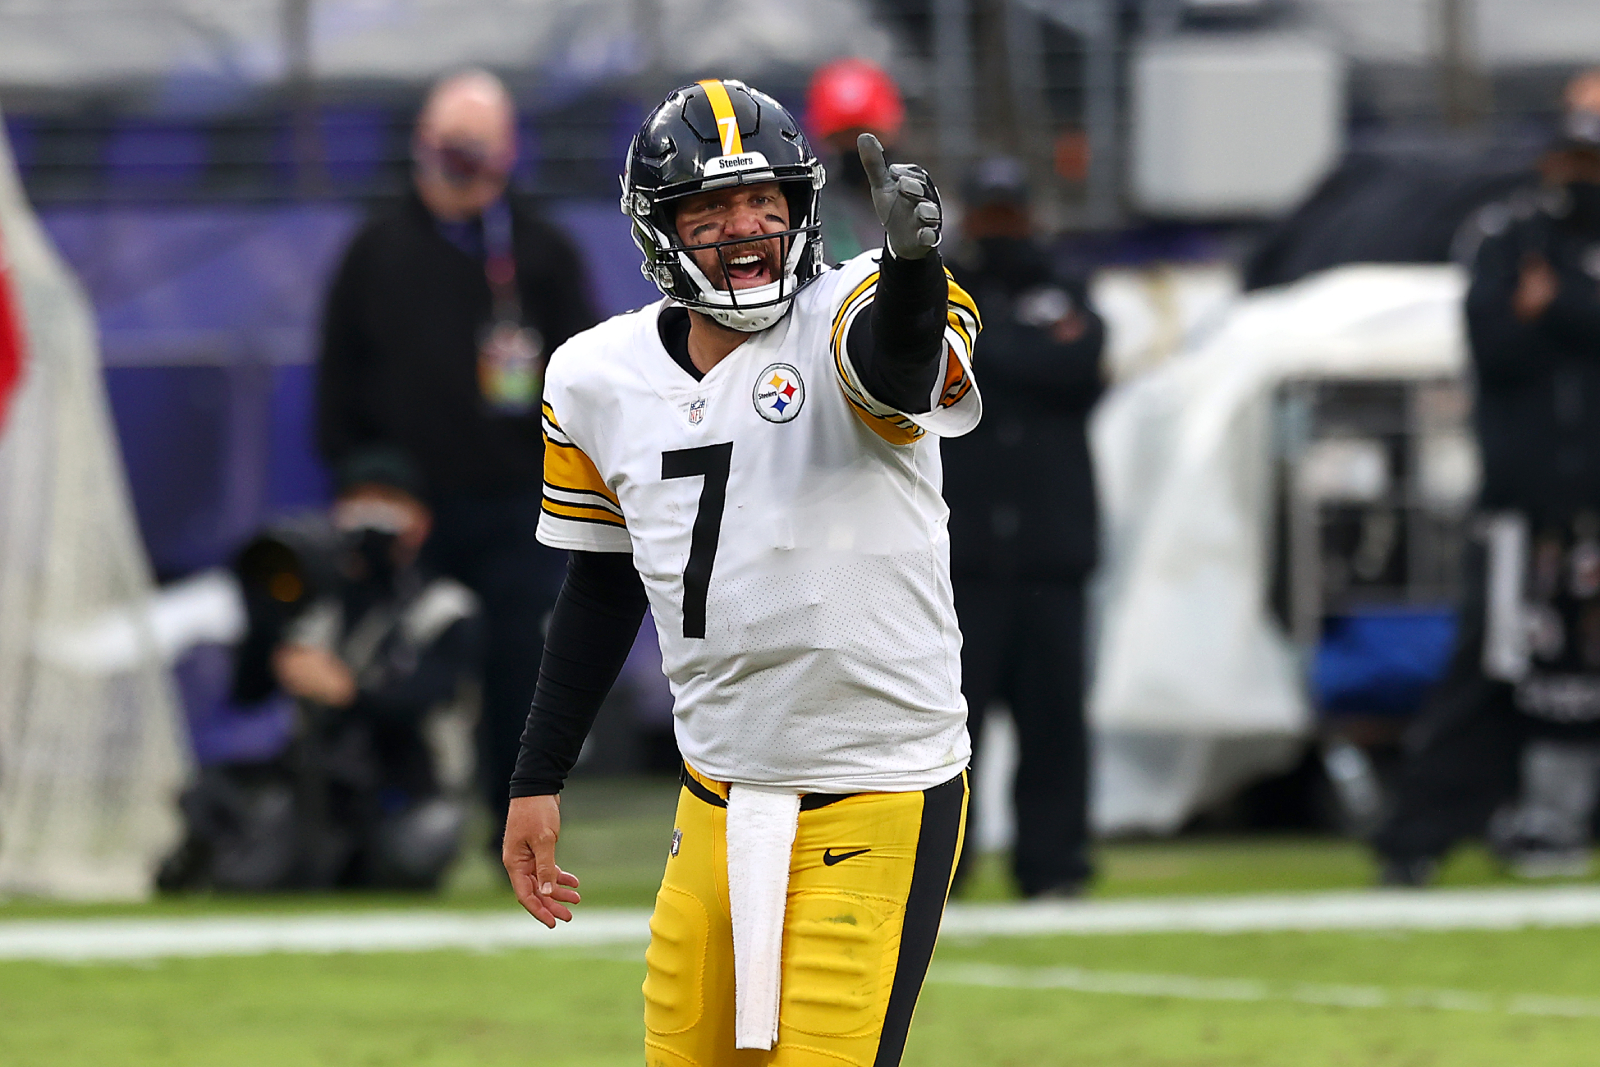 Ben Roethlisberger has already become an NFL legend in his career. His recent move with the Steelers, though, just proved that he is a GOAT.